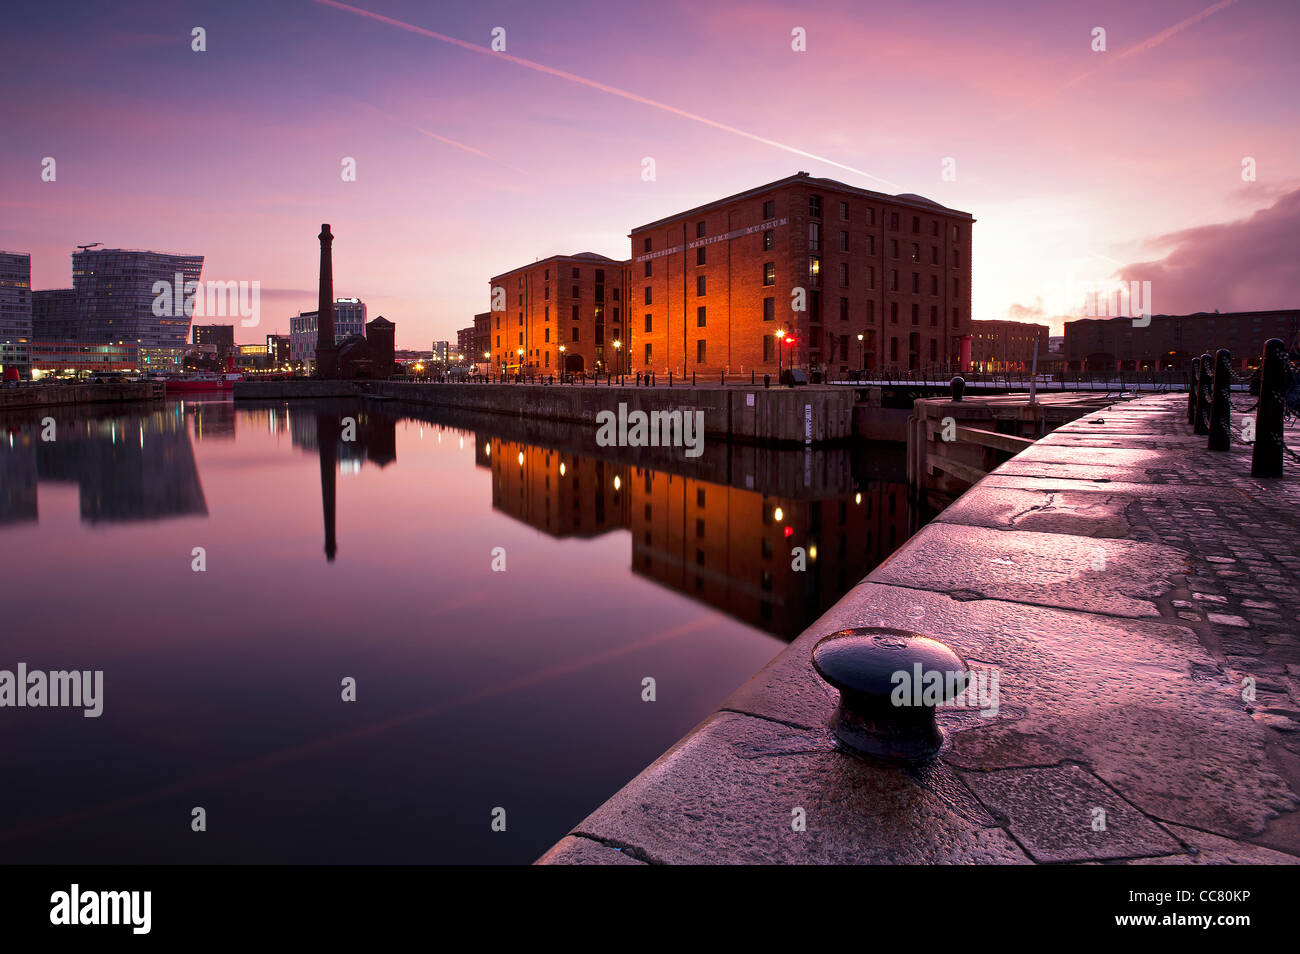 The Albert Dock Liverpool Merseyside UK - Stock Image